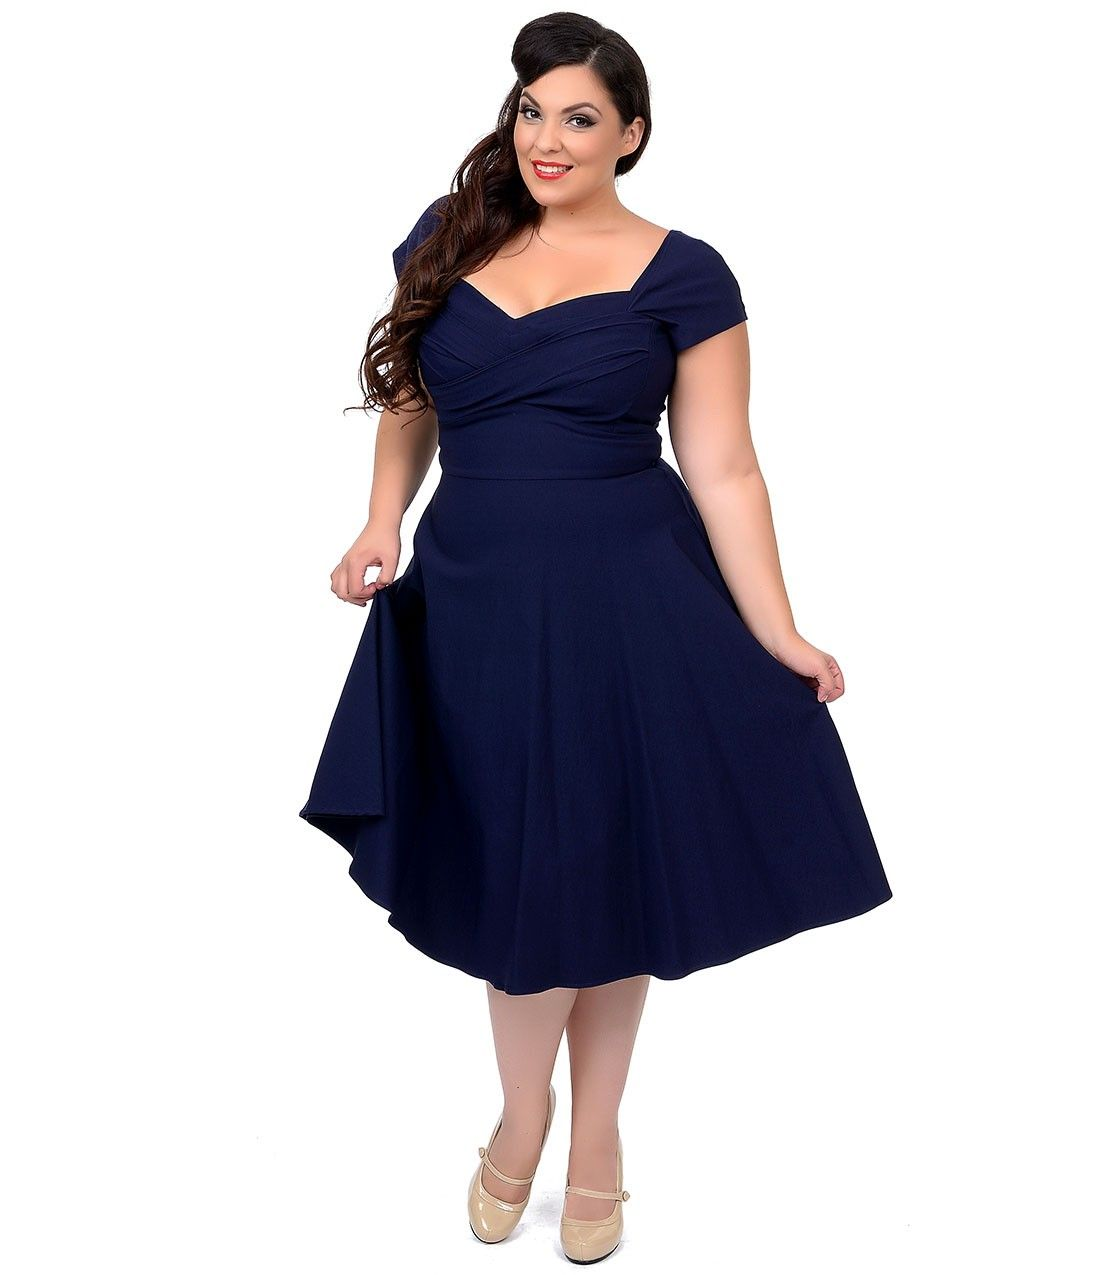 Plus Size Mad Men Navy Swing Dress Uniquevintage Curvy Chic